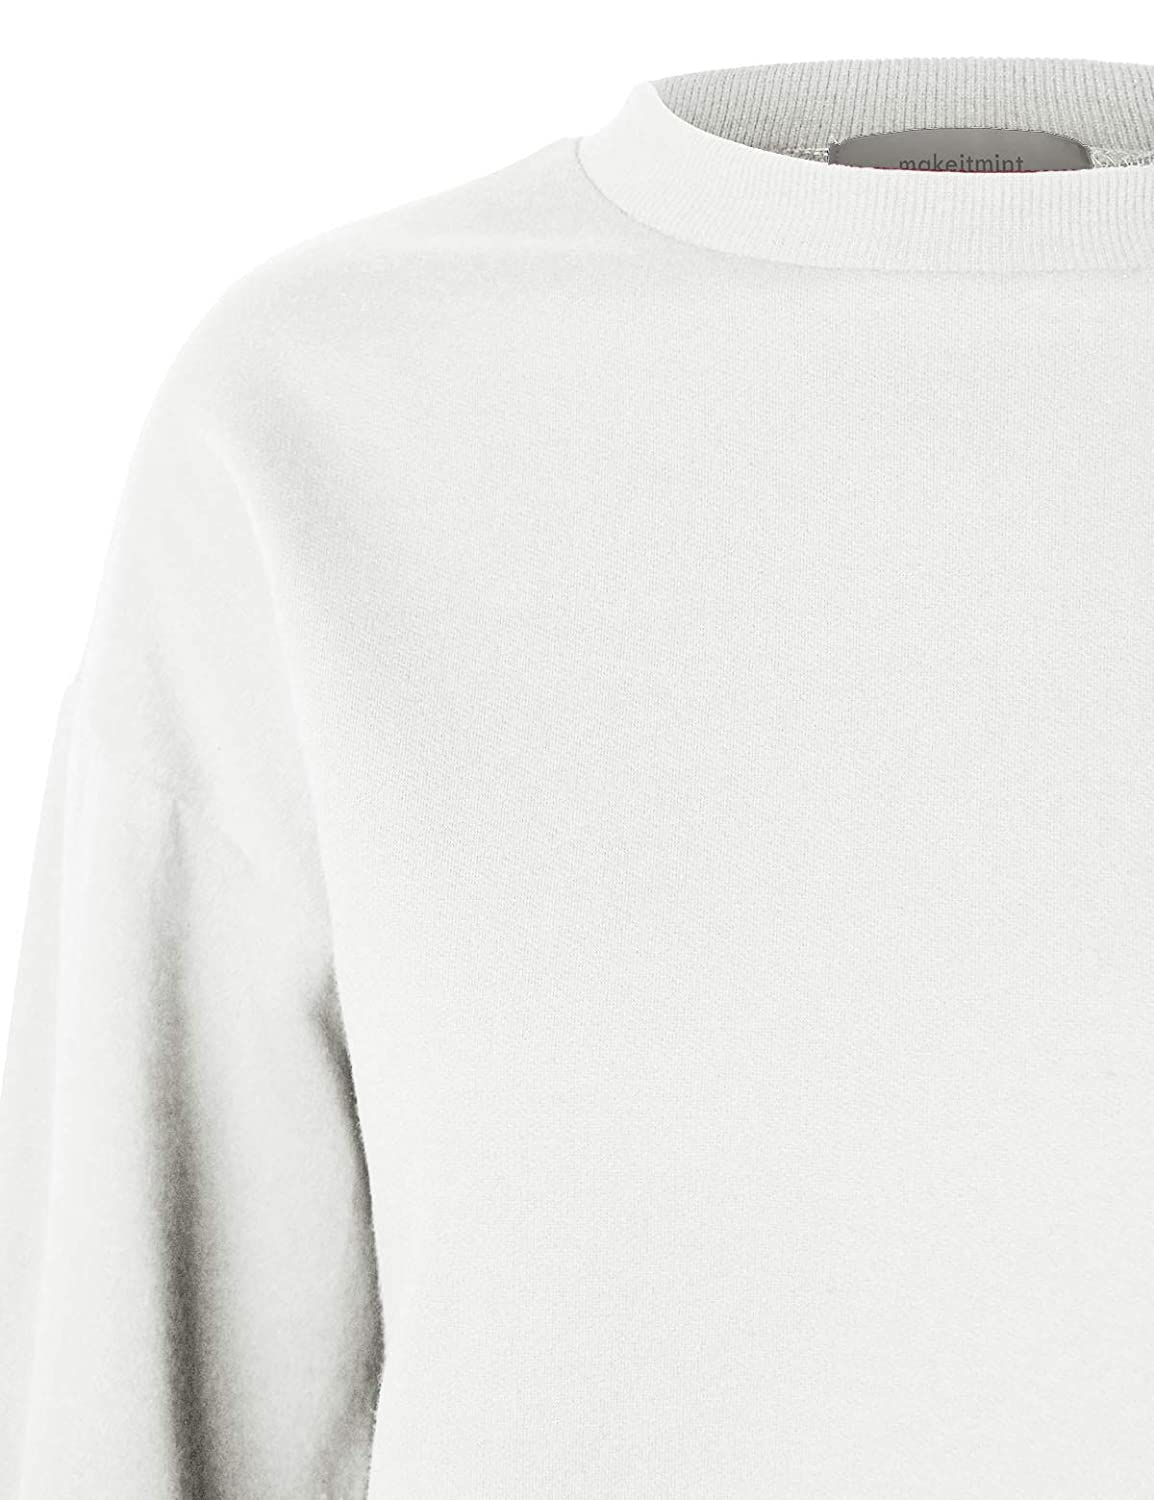 makeitmint Womens Must Have Oversized Soft French Terry High Low Sweatshirt Top YIL0020-WHITE-MED YIL0020-WHITE-MEDIUM